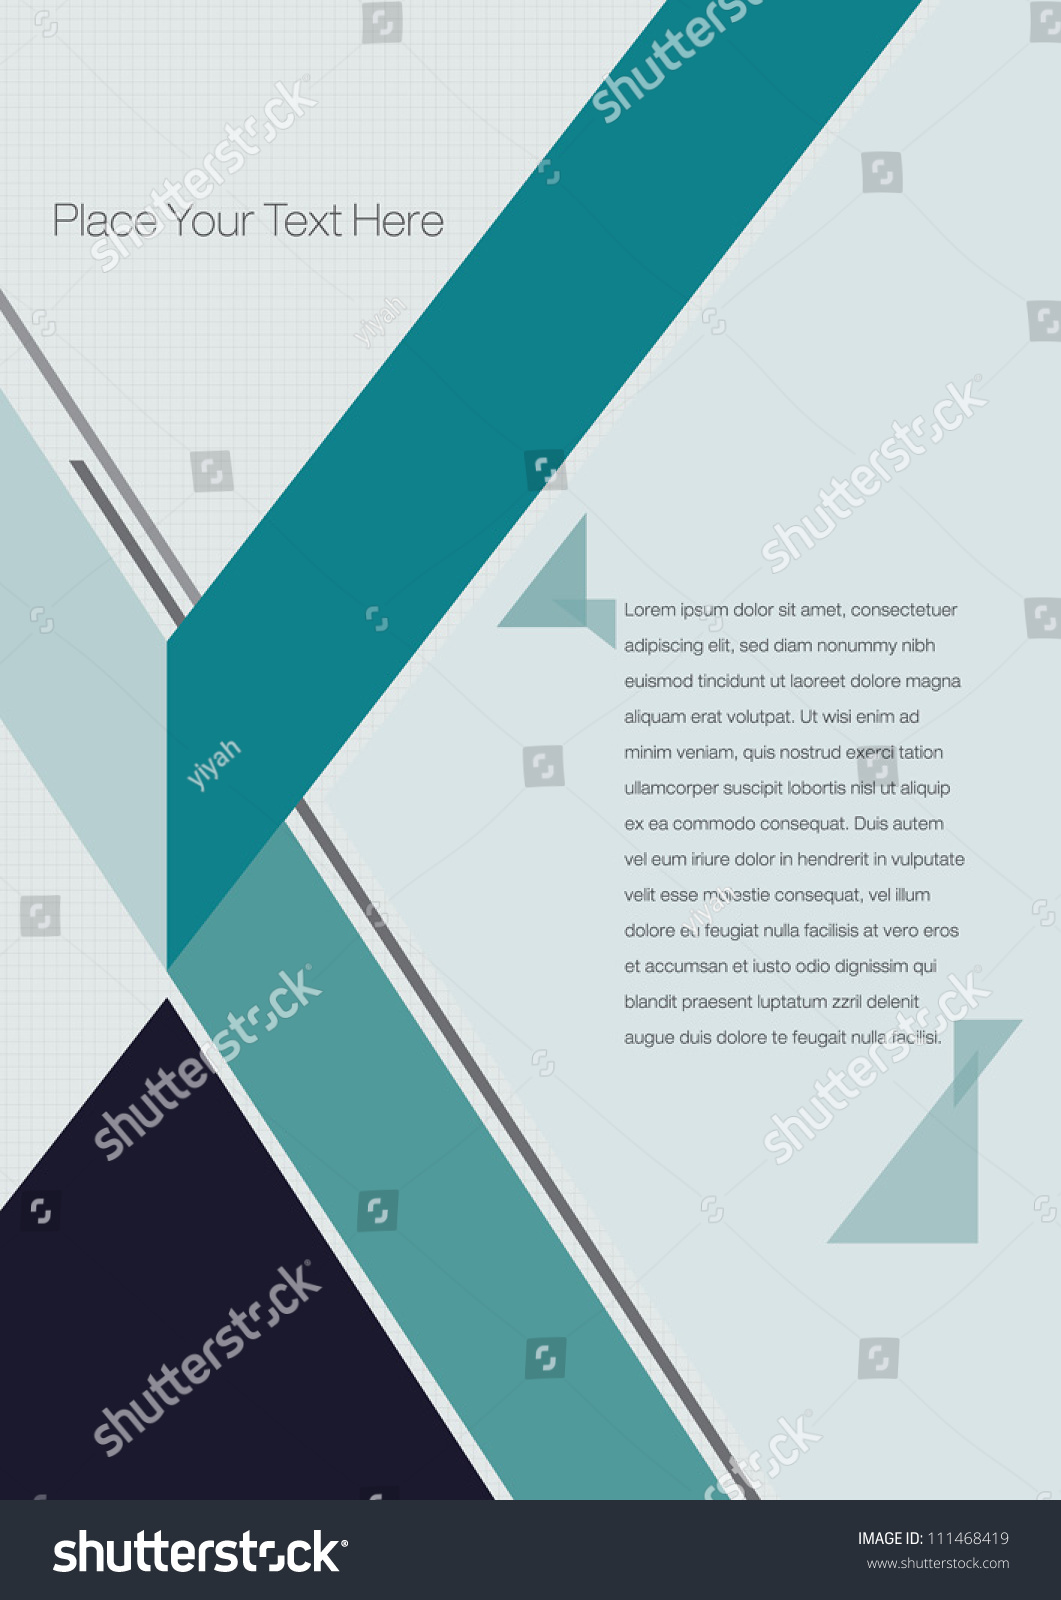 Print vector poster design template layout design background graphics